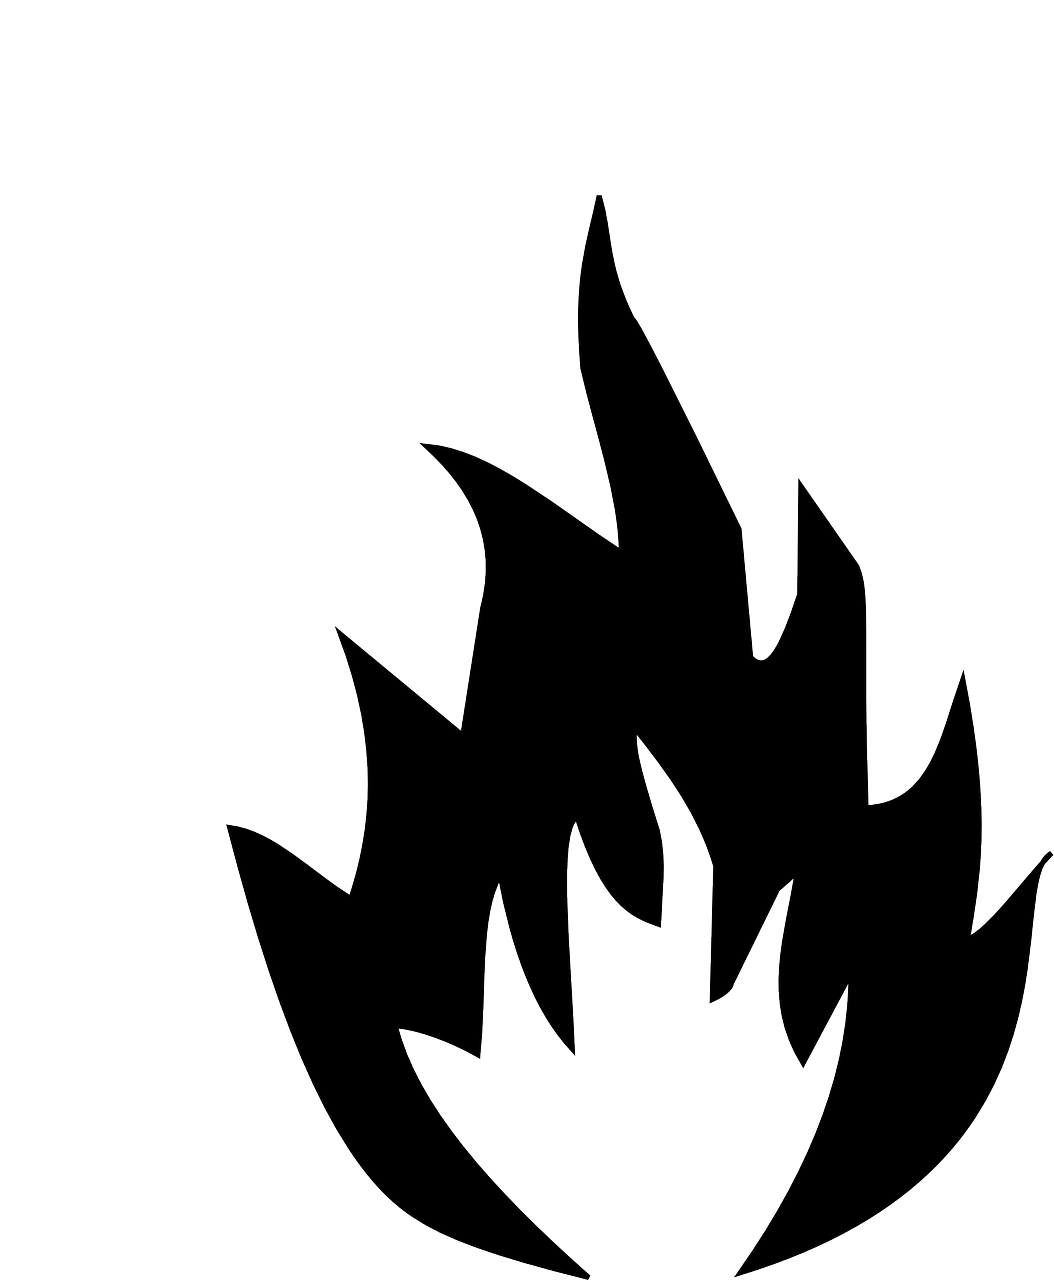 How to draw flames fire - free stencils 16